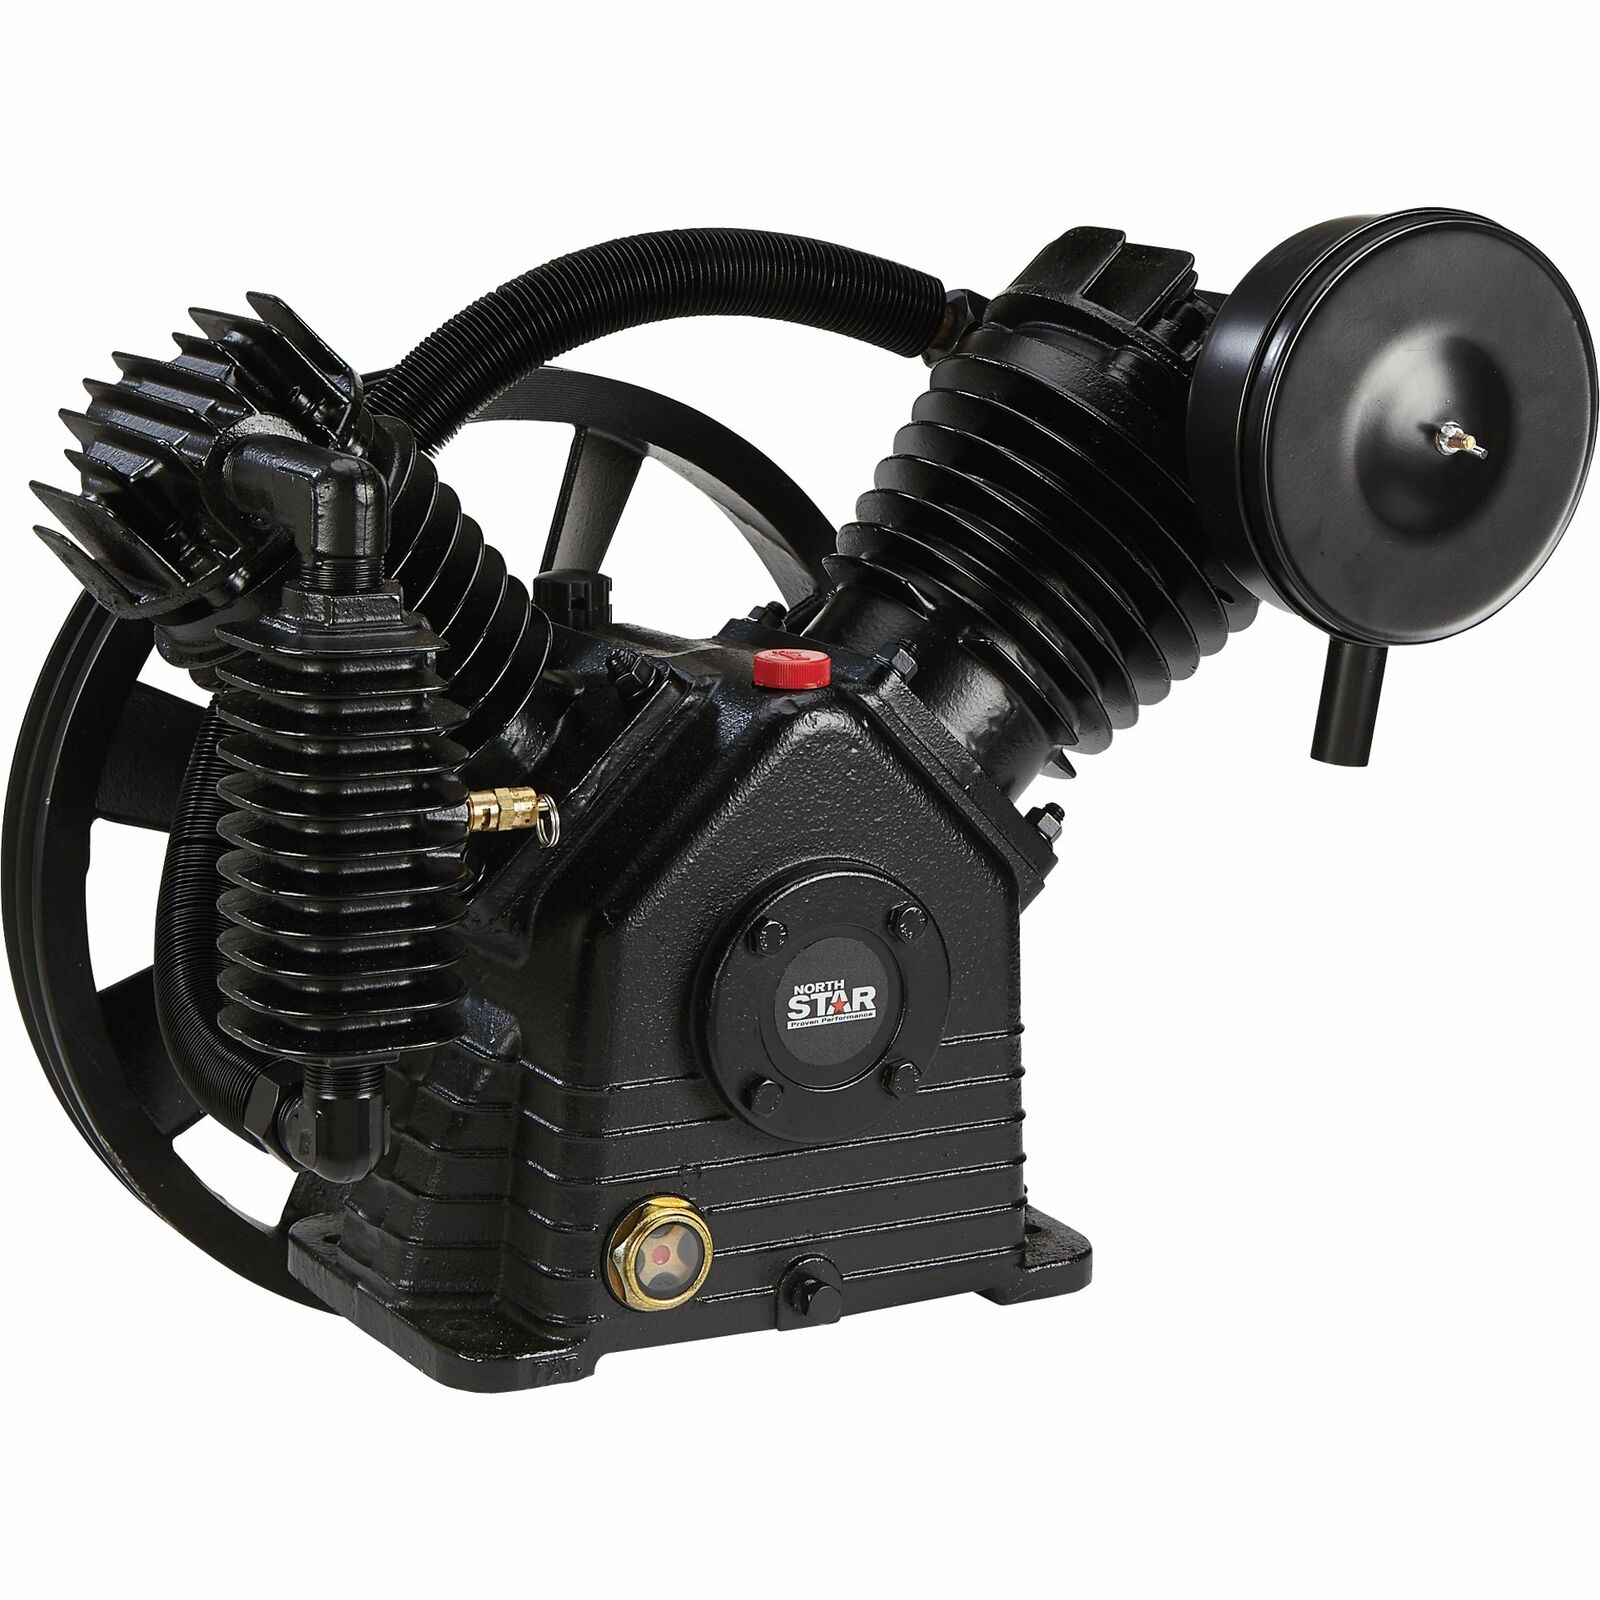 NorthStar Air Compressor Pump - 2-Stage 2-Cylinder 24.4 CFM @ 90 PSI 175 Max PSI. Buy it now for 599.99